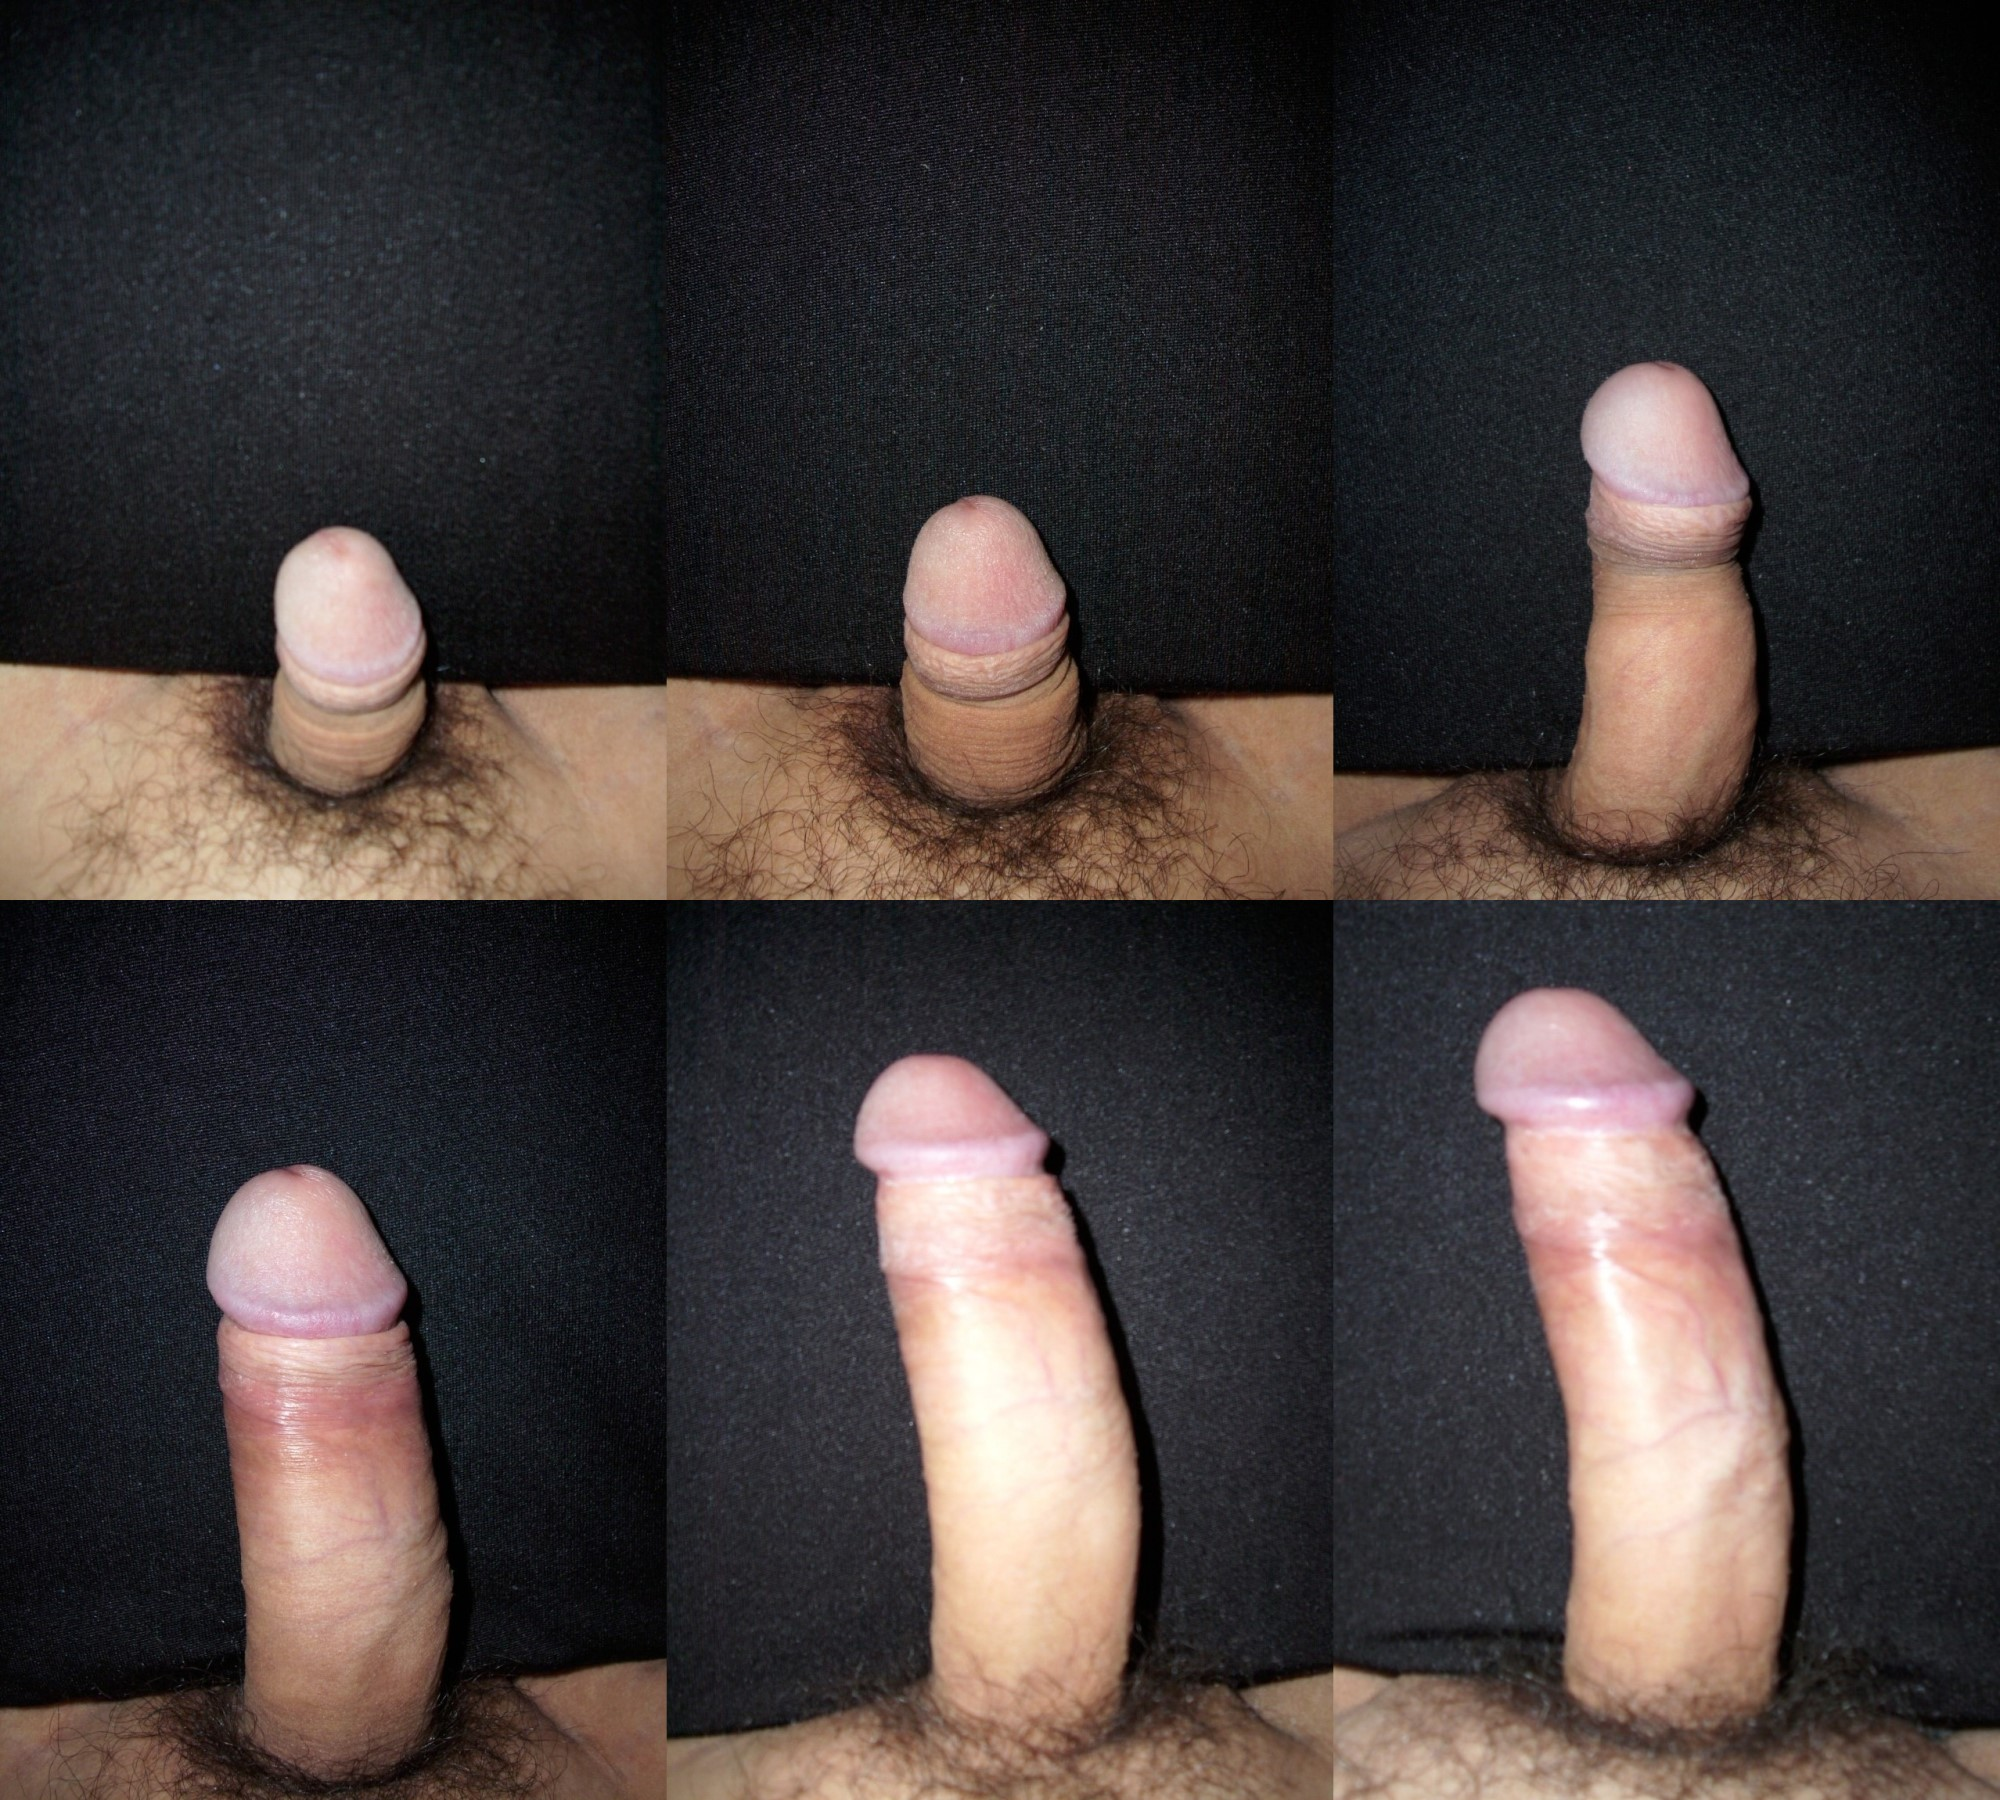 Growing a big dick